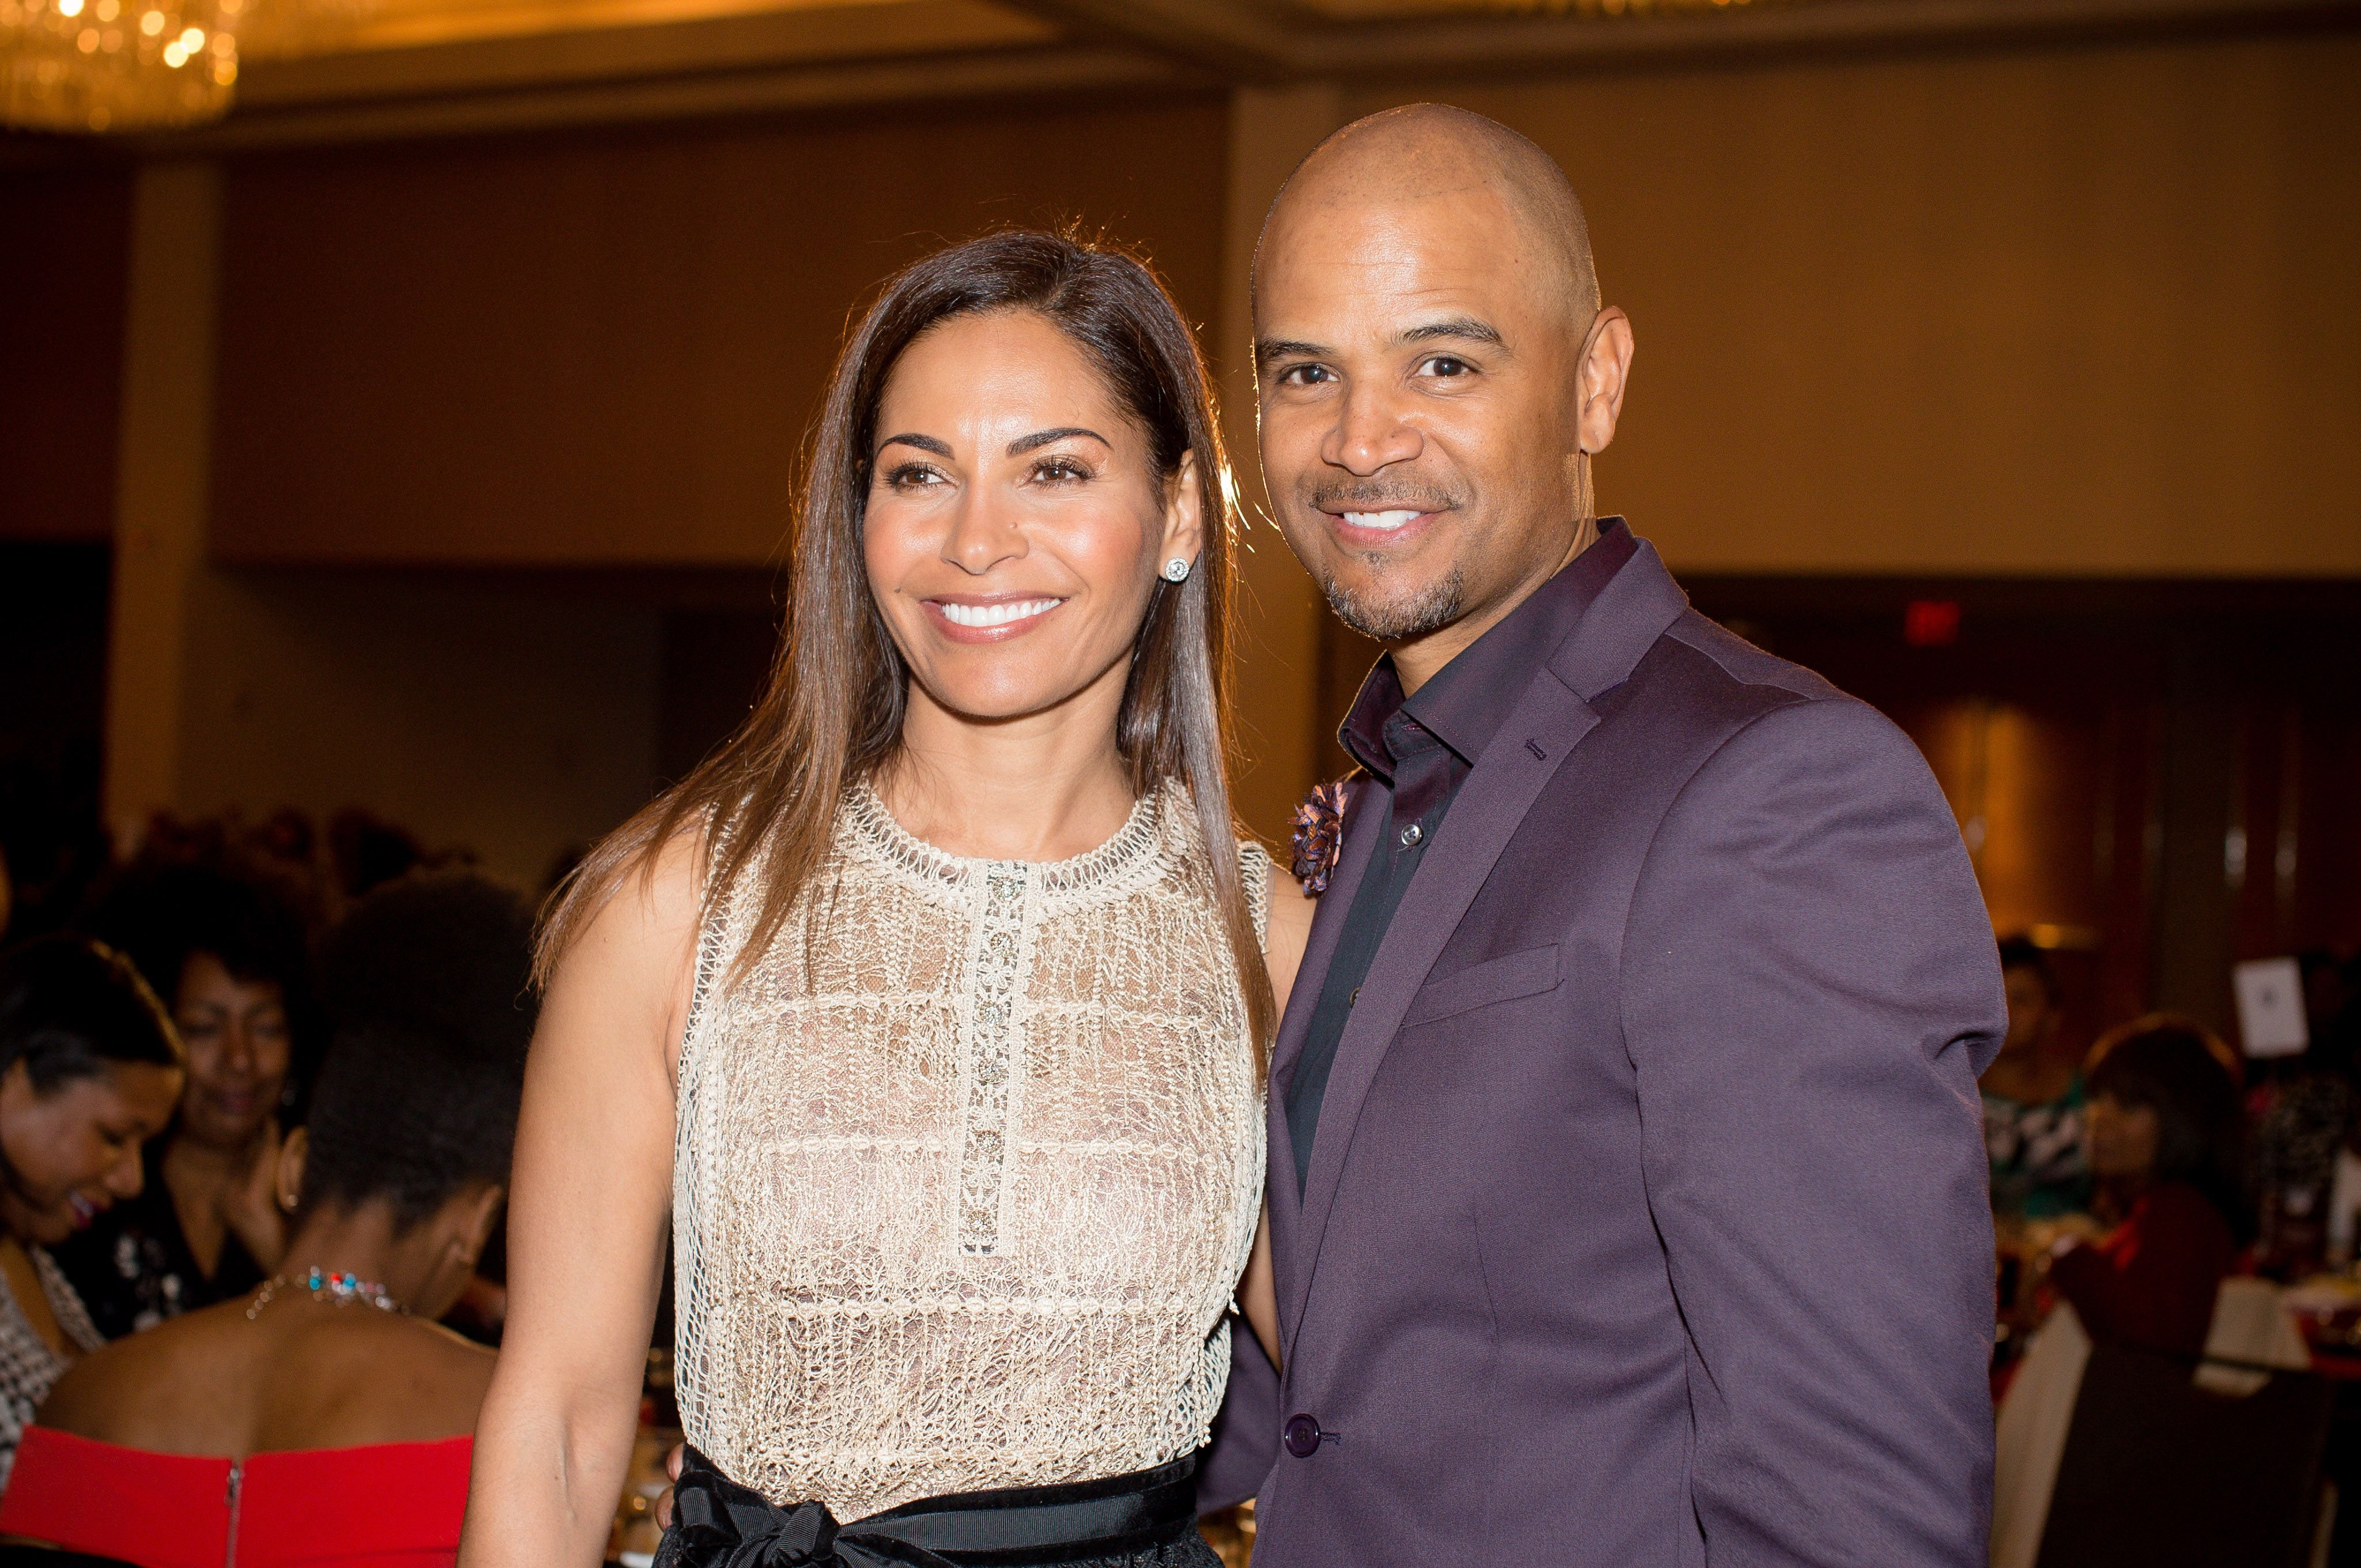 Salli Richardson Whitfield and Dondre Whitfield at the 2017 Black Women Film Summit awards luncheon at Atlanta Marriott Marquis on March 3, 2017. | Photo: Getty Images